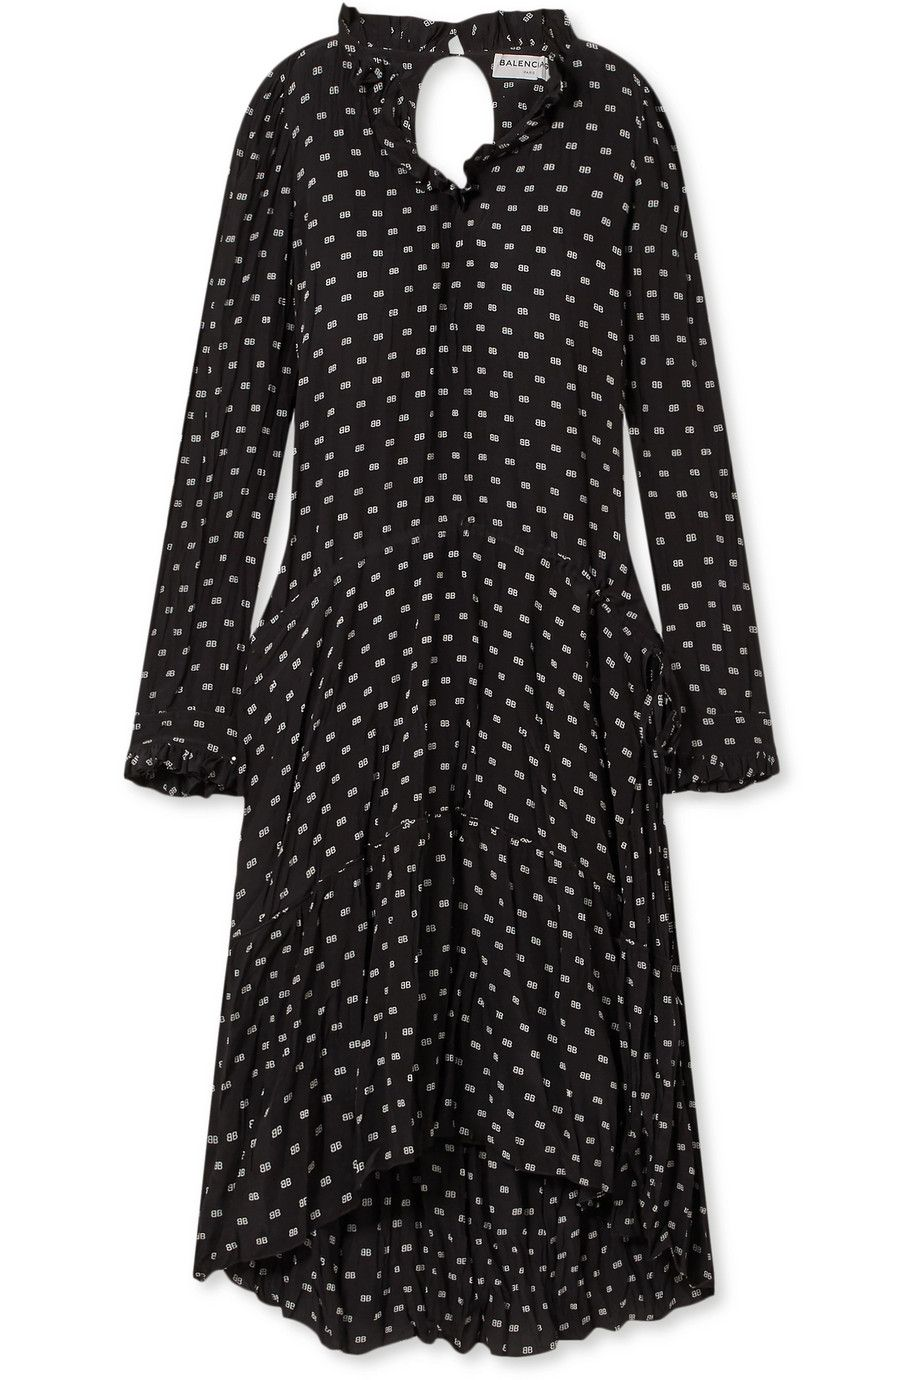 Net-A-Porter x Balenciaga Printed crinkled-silk midi dress